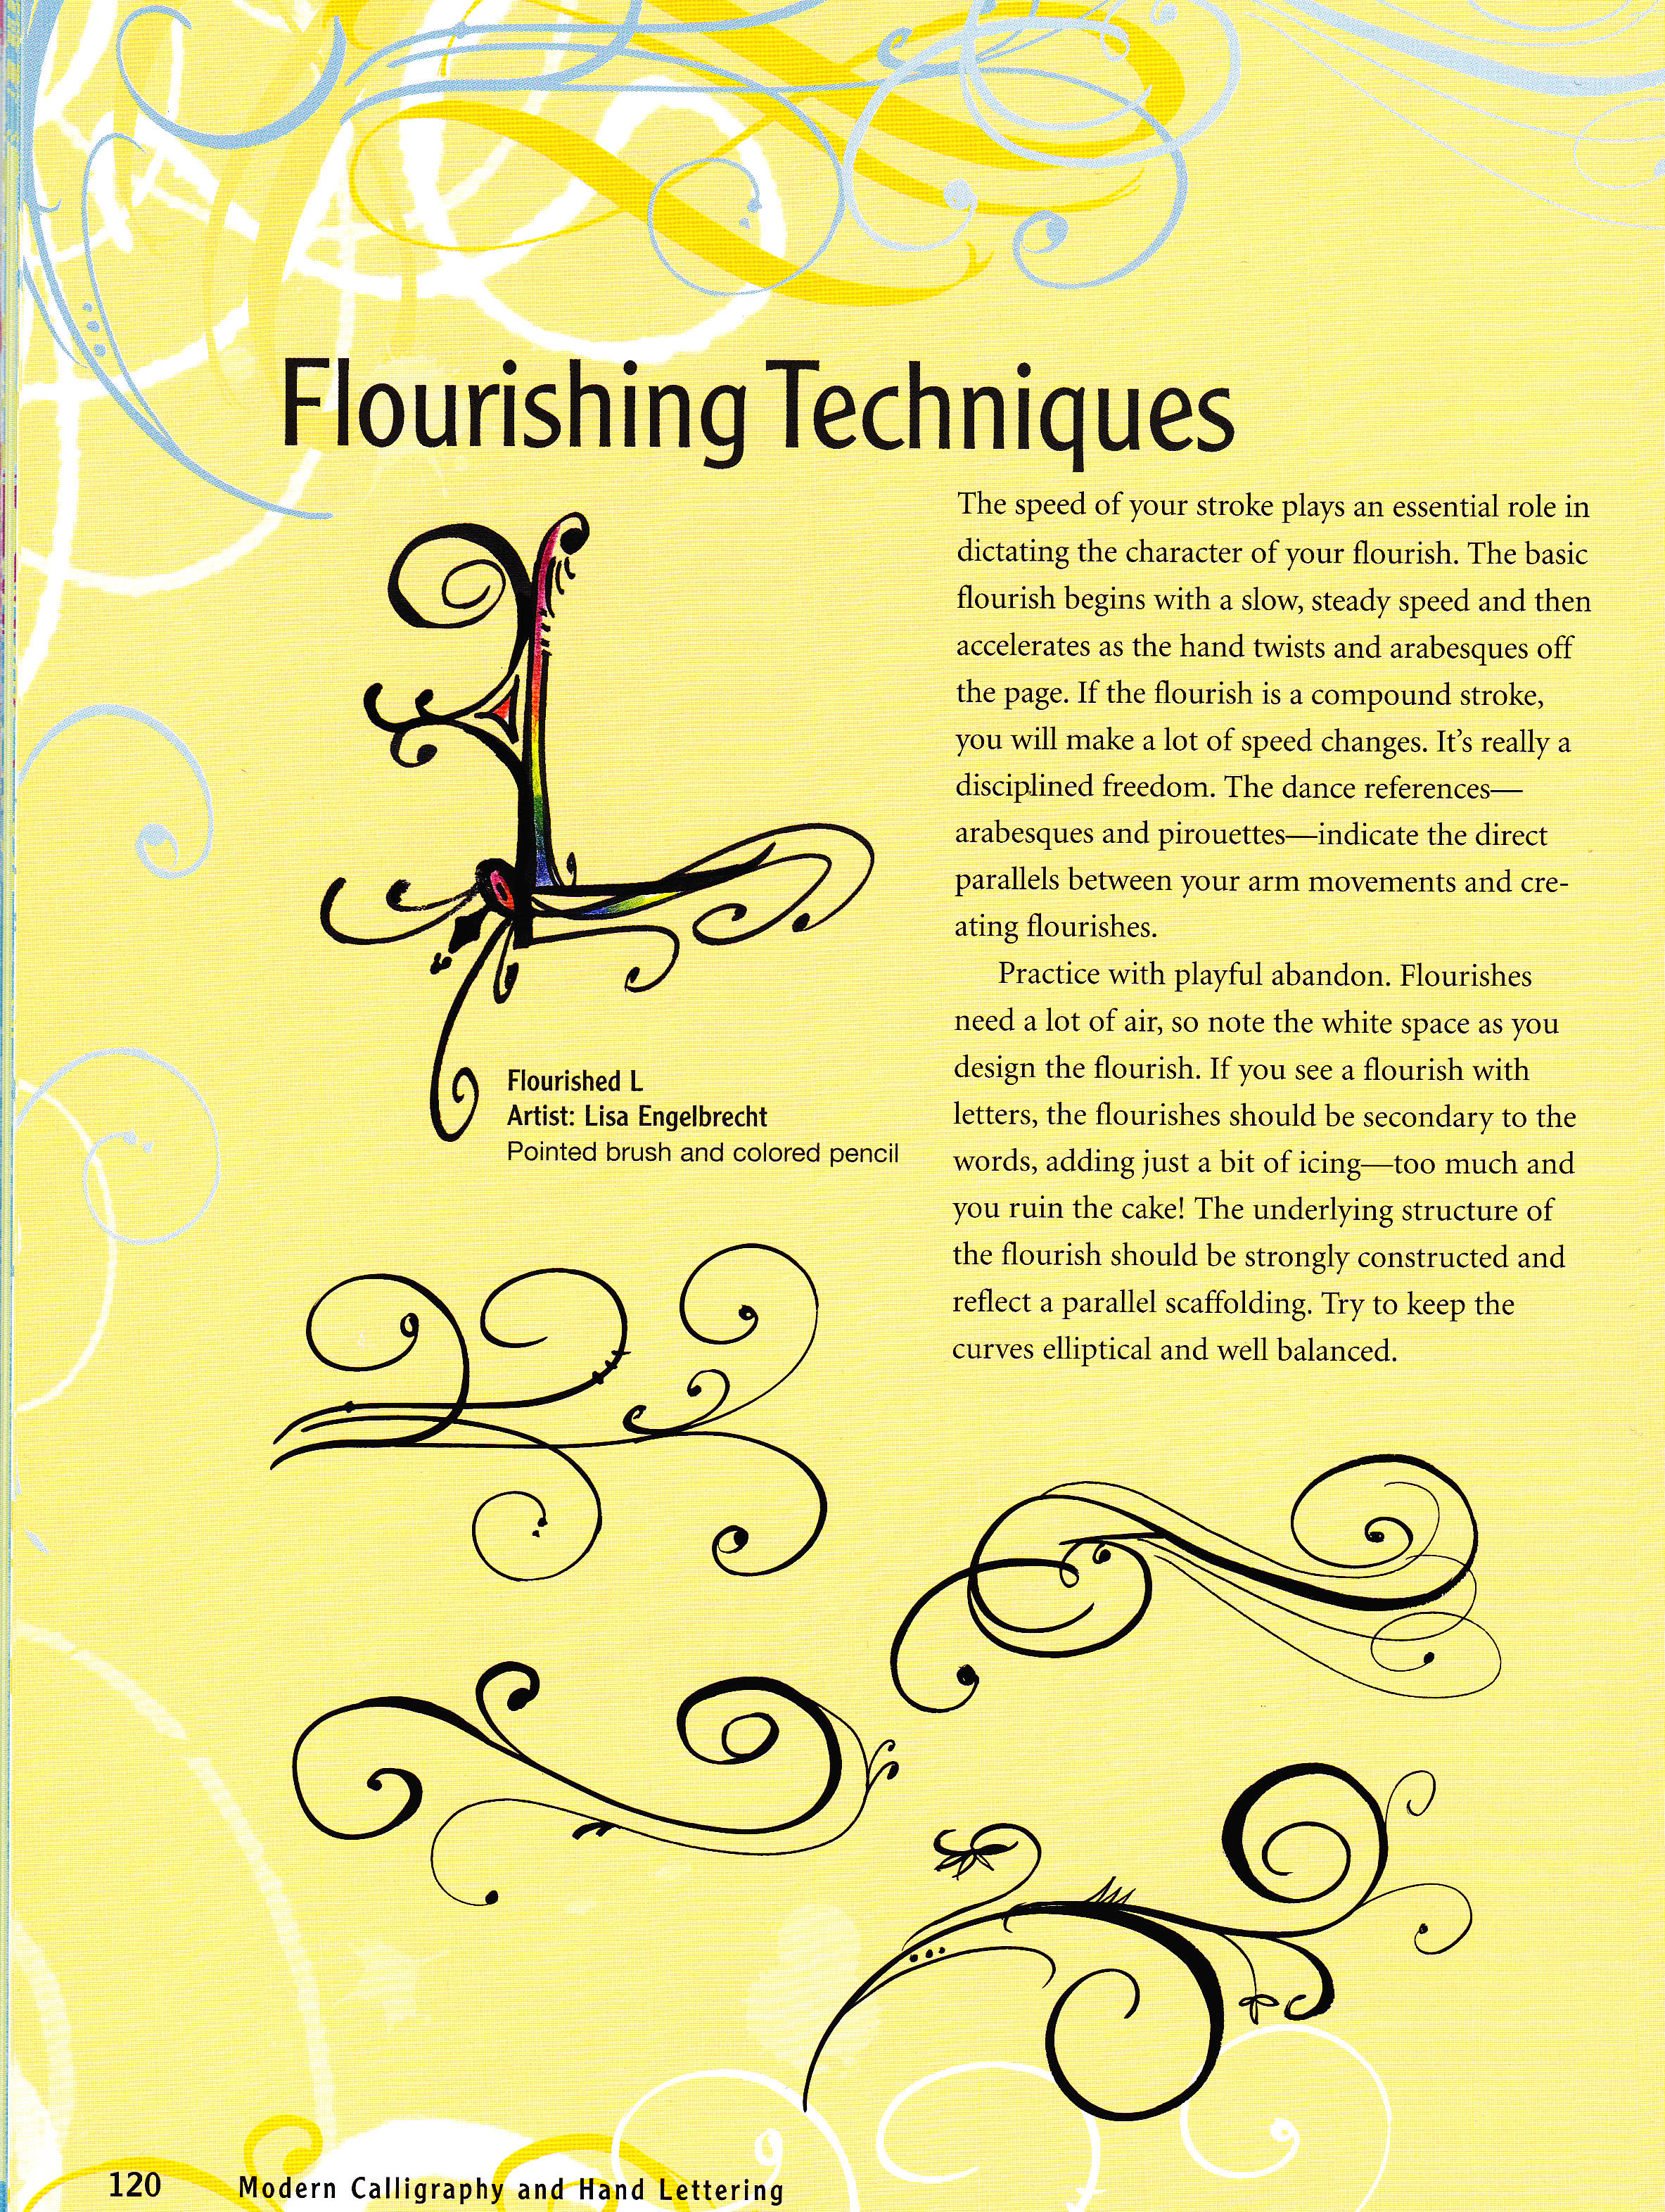 How To Make Flourishes Techniques If You Are Into Hand Lettering